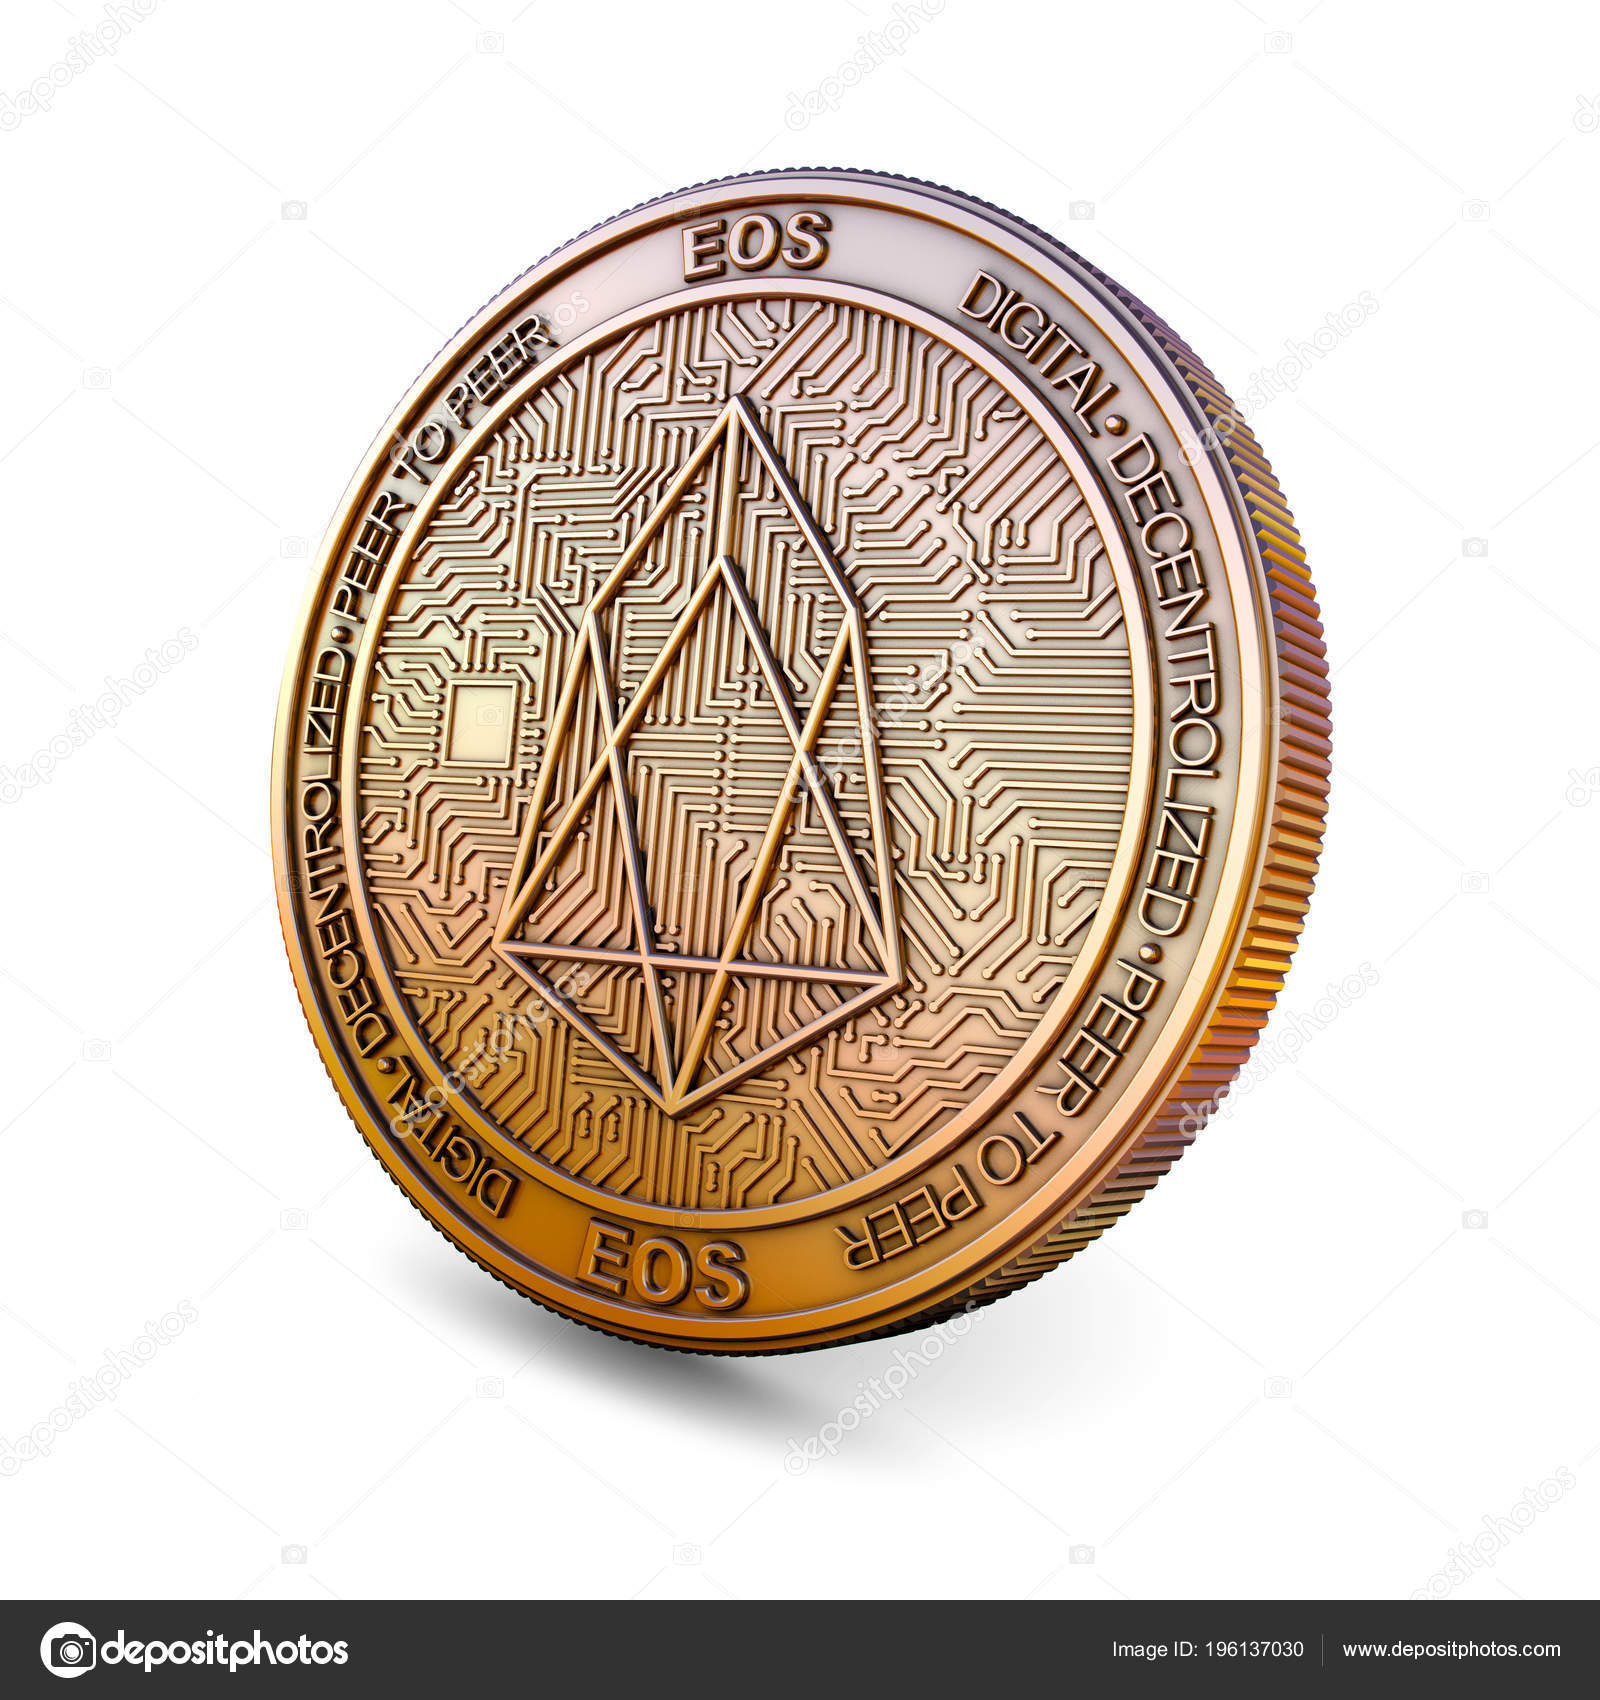 eos cryptocurrency stock